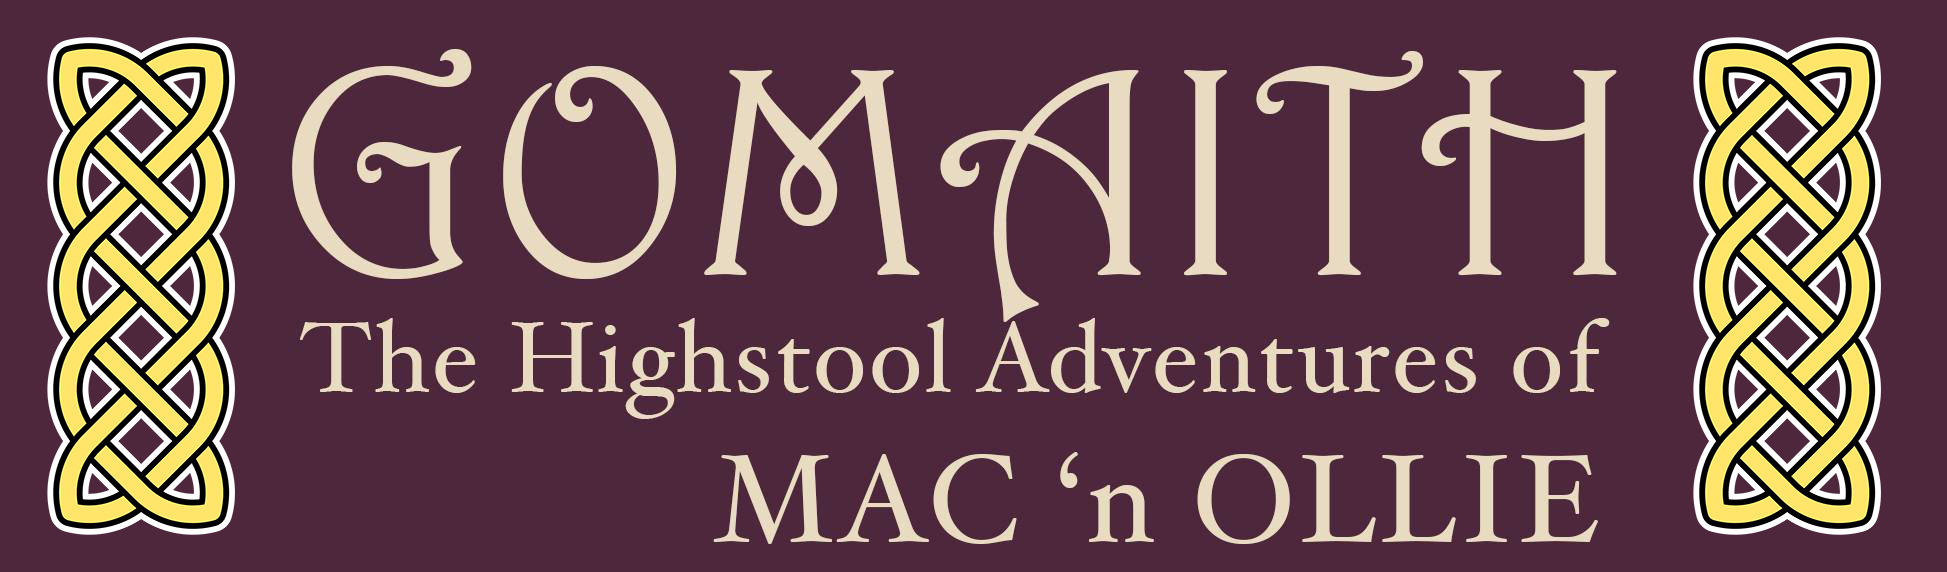 Header Banner for Gomaith - The Highstool Adventures of Mac n' Ollie, Irish, Gaelic, Comic Strip